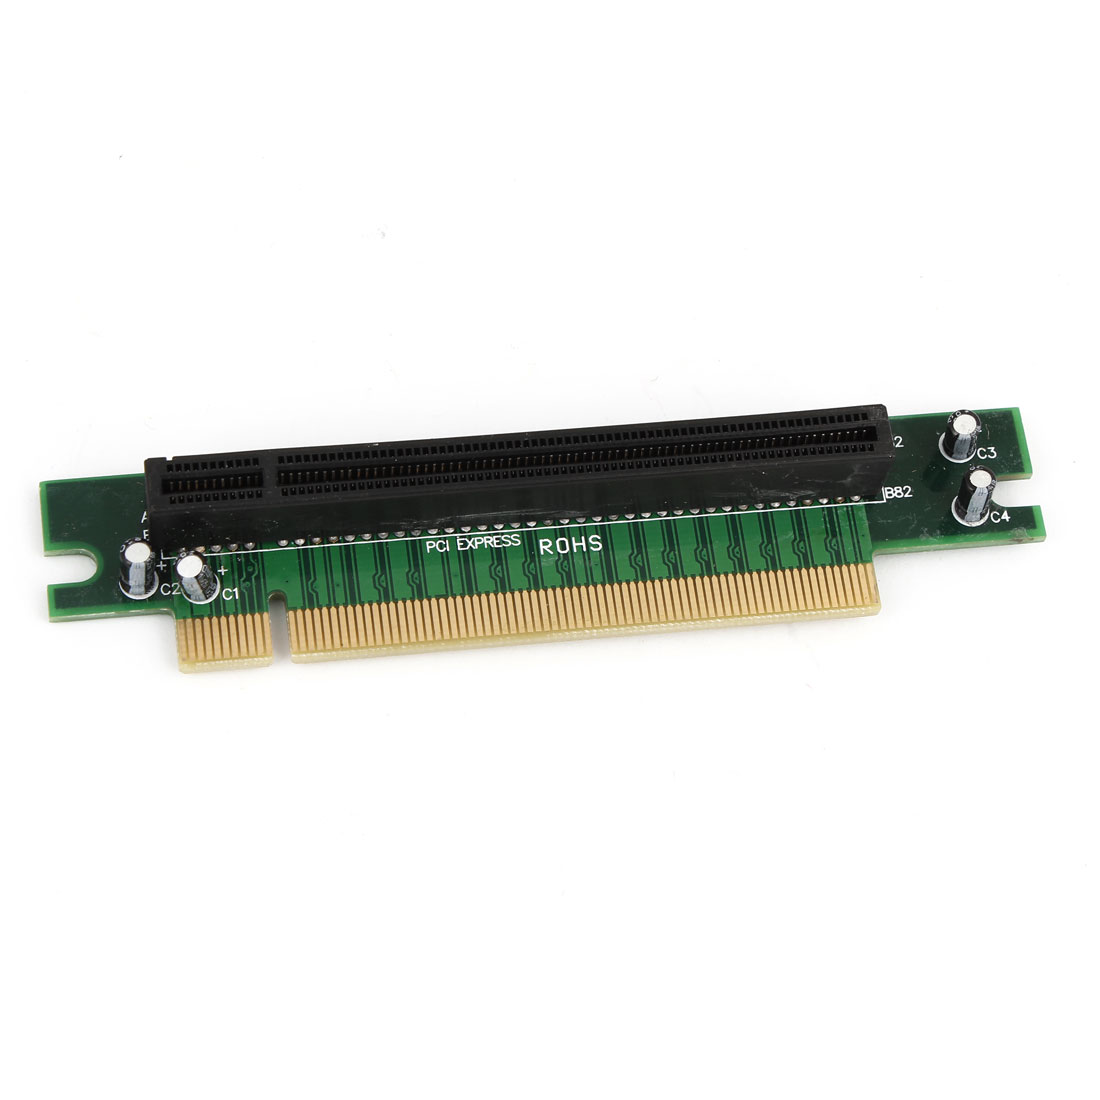 PCI Express PCI-e 16x Angle Riser Extender Card Adapter for PC Computer